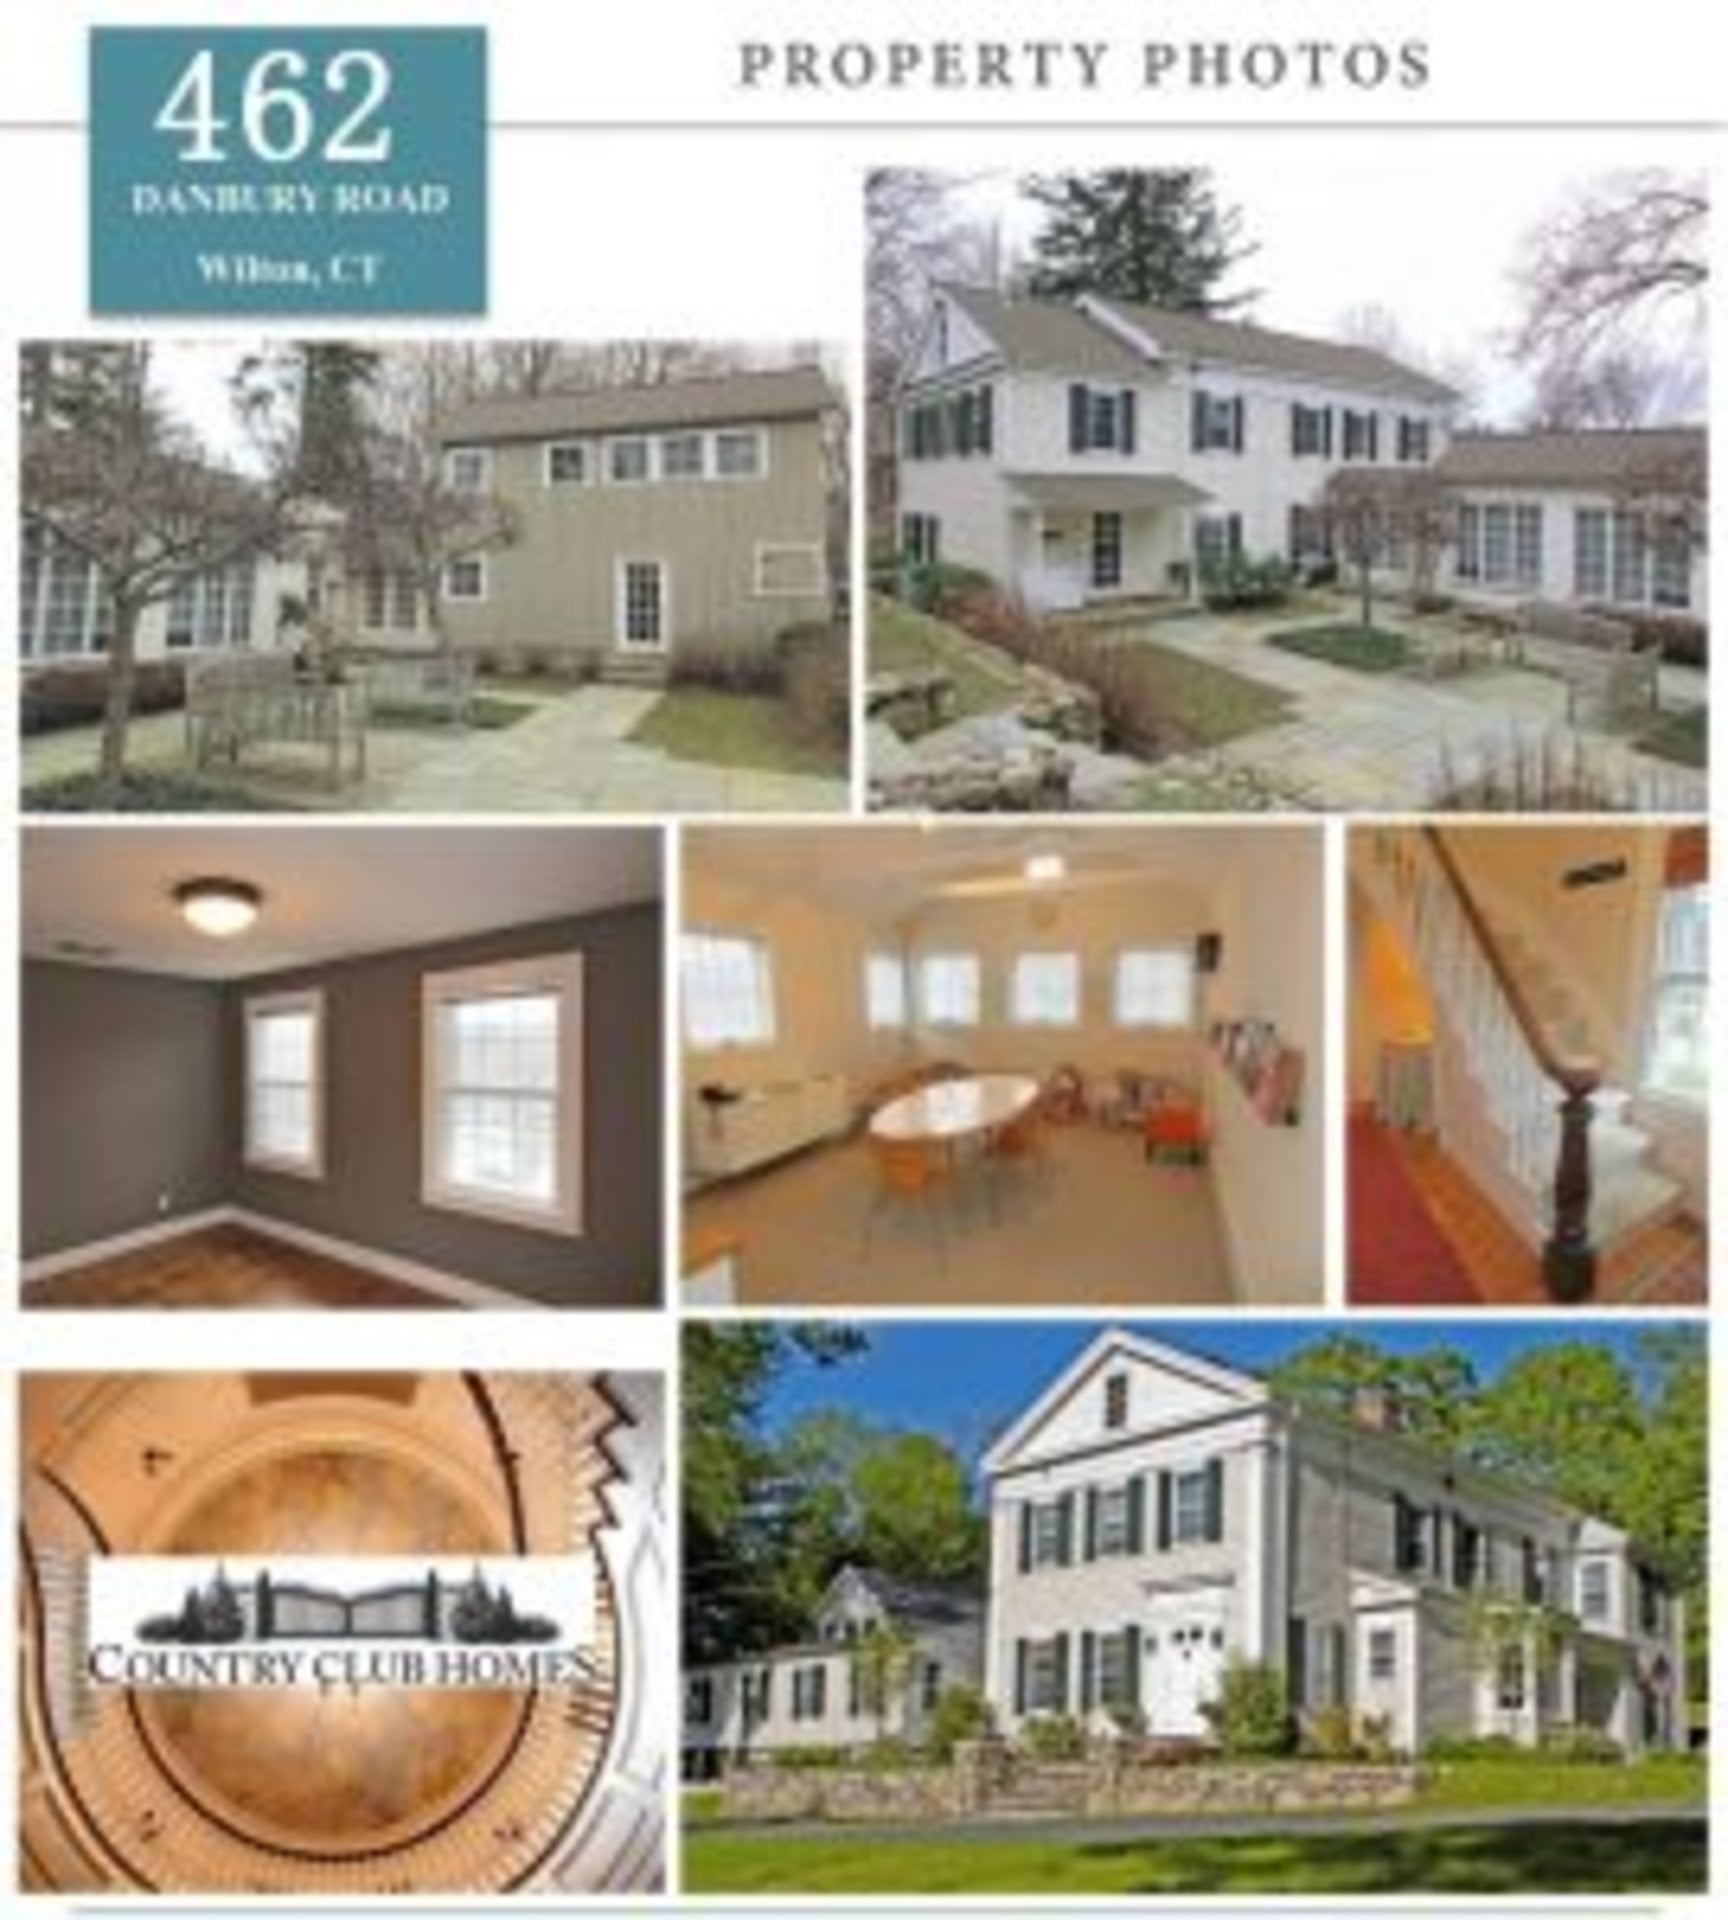 Investment Opportunity: 462 Danbury Road, Wilton, Connecticut